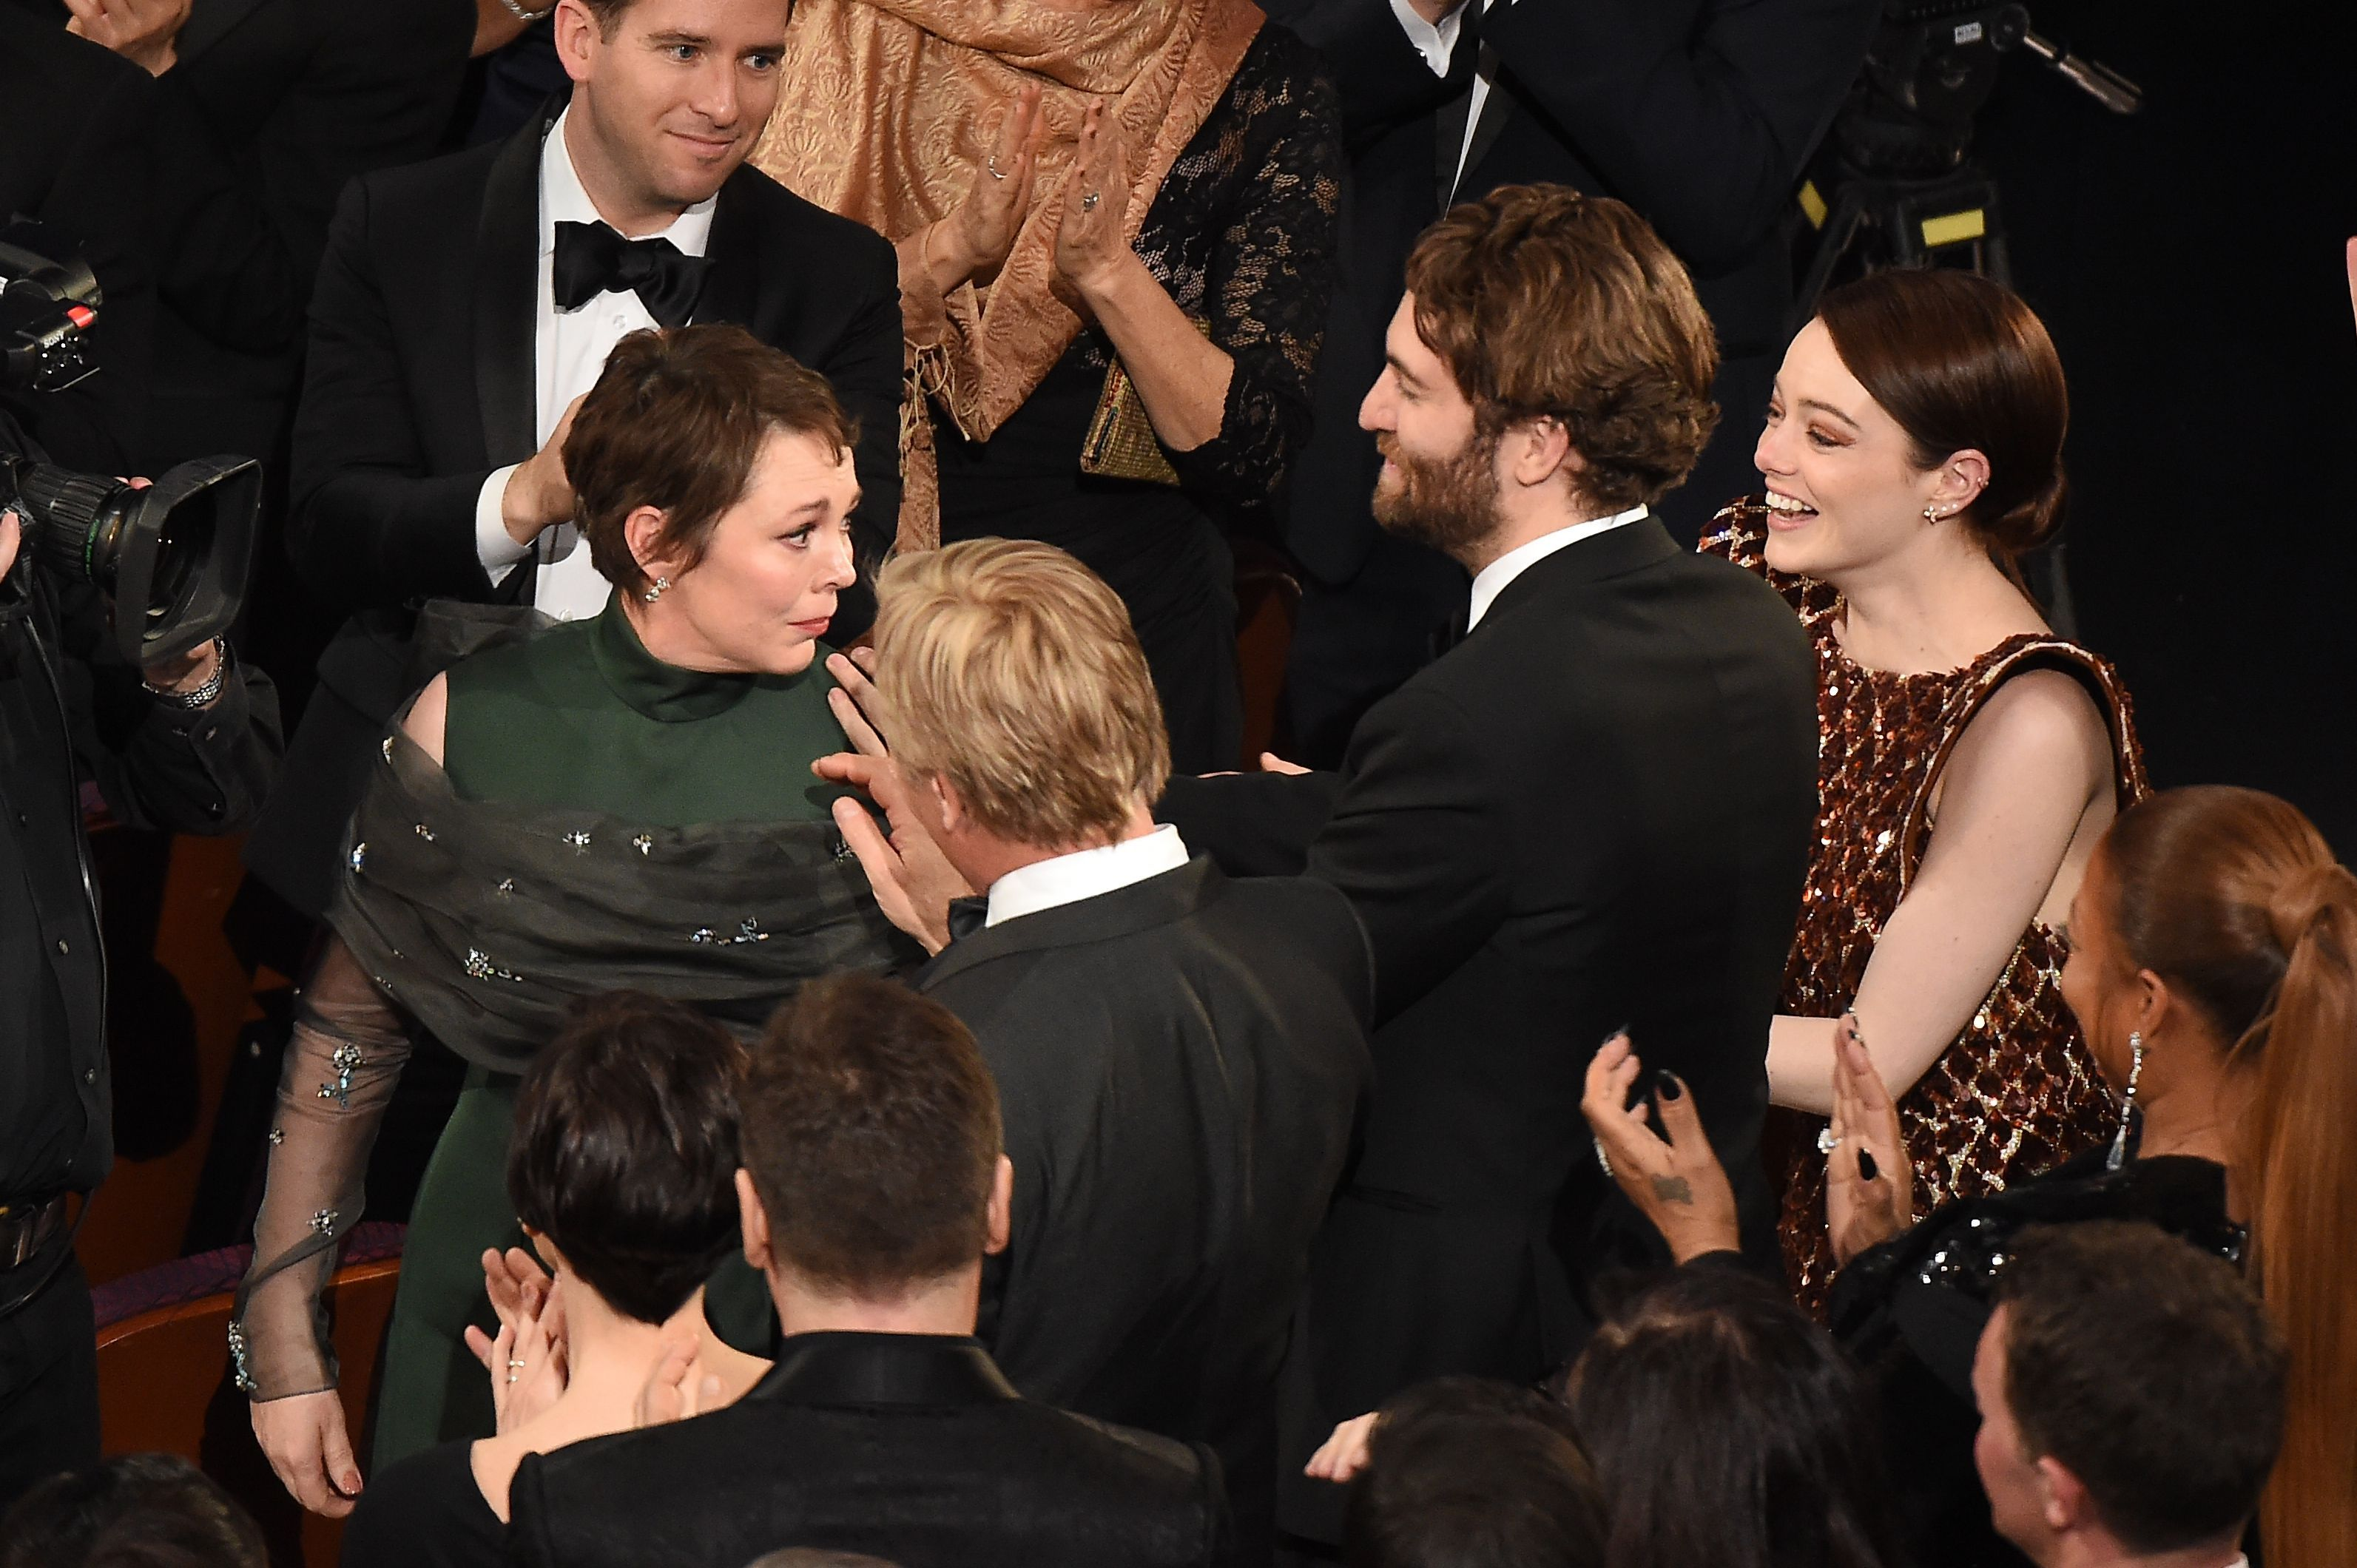 Emma Stone Was Touchingly Supportive of Women at the 2019 Oscars